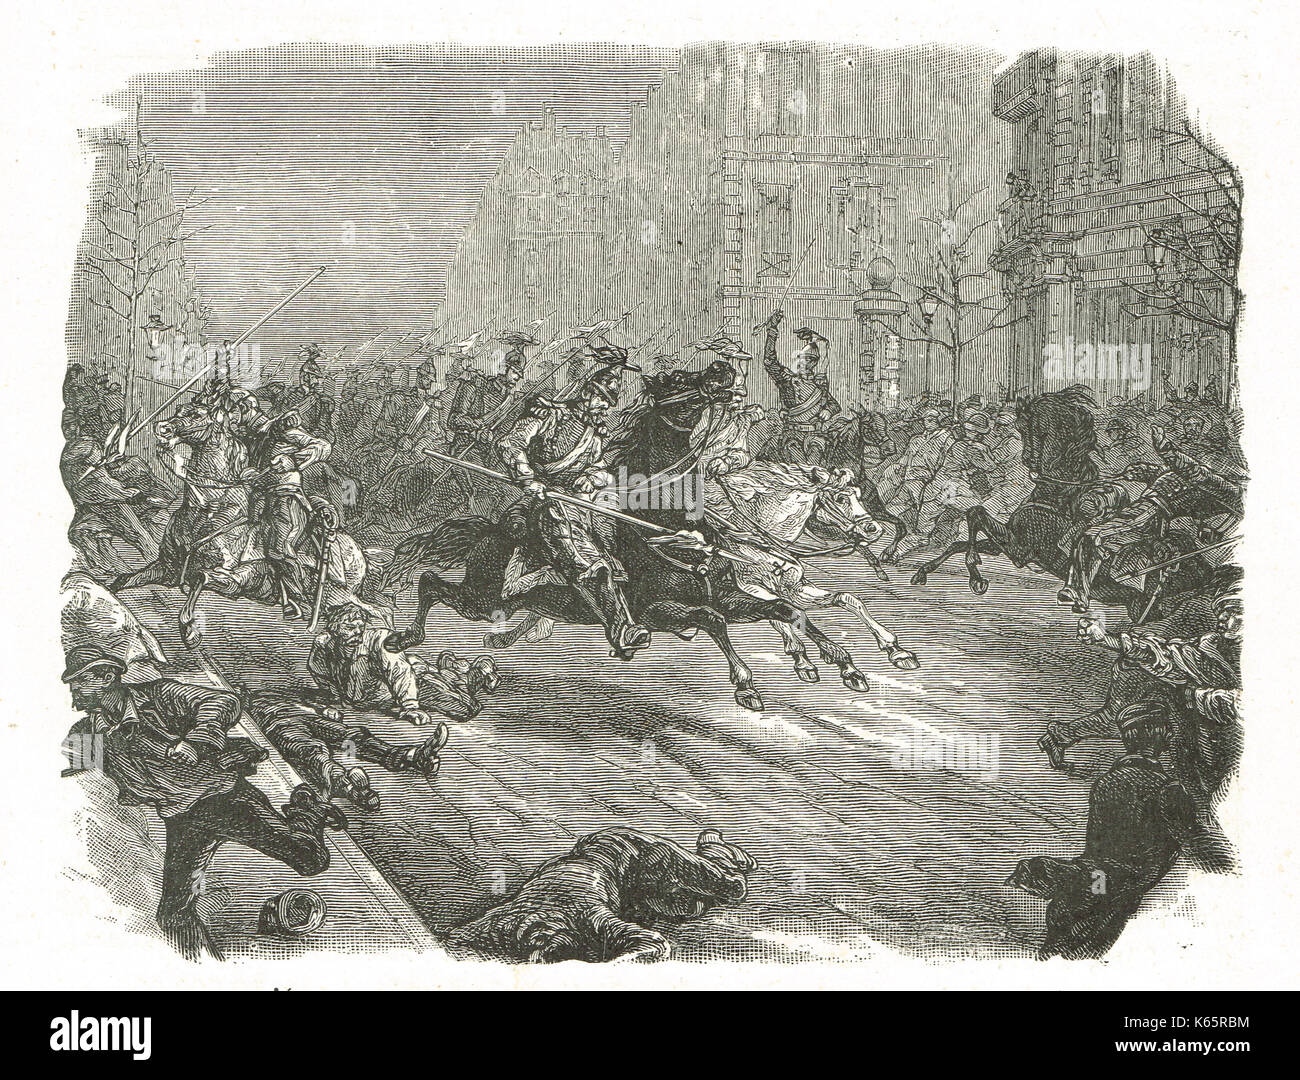 French coup d'état of 1851, lancers charging the crowd in the boulevards of Paris - Stock Image